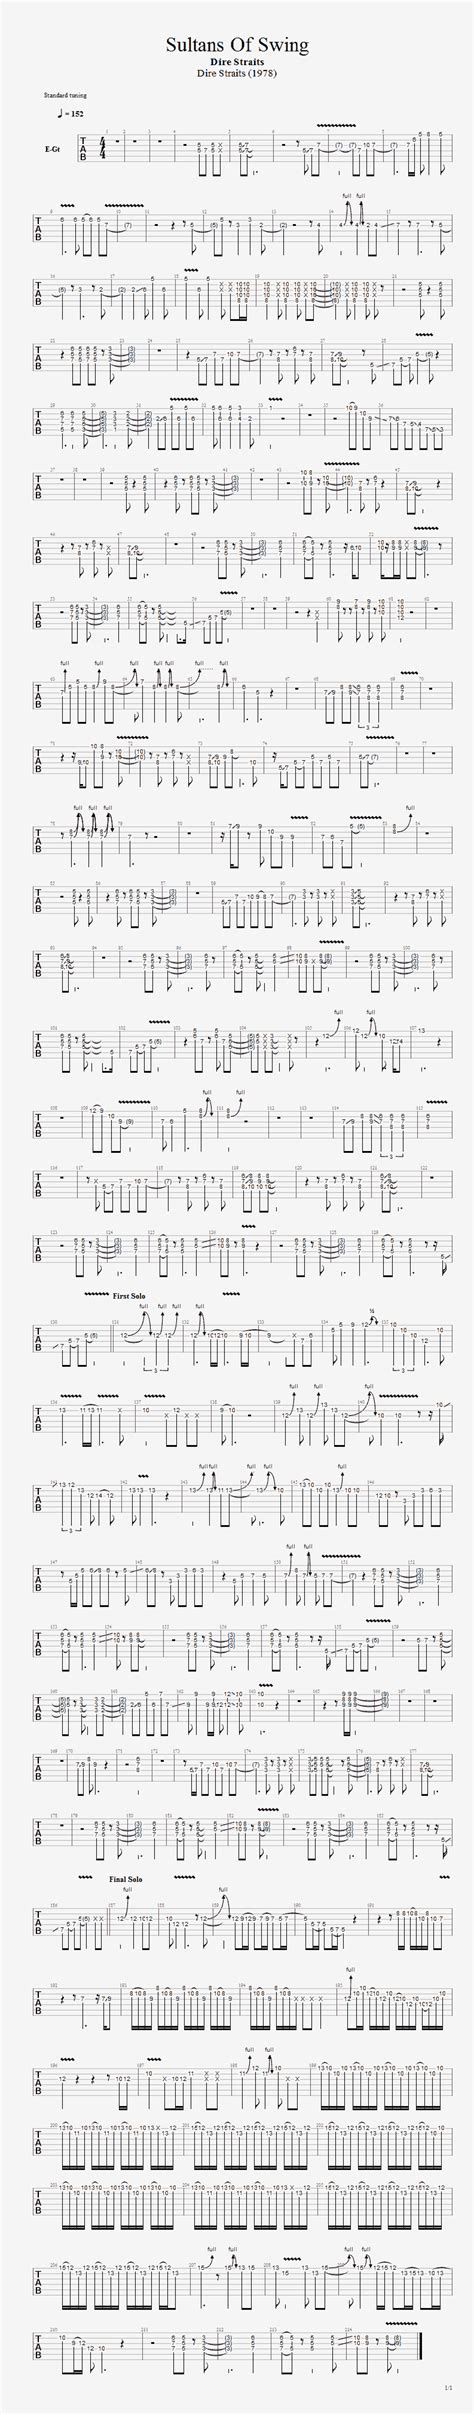 how to play sultans of swing guitar sultans of swing guitar tab guitarnick com